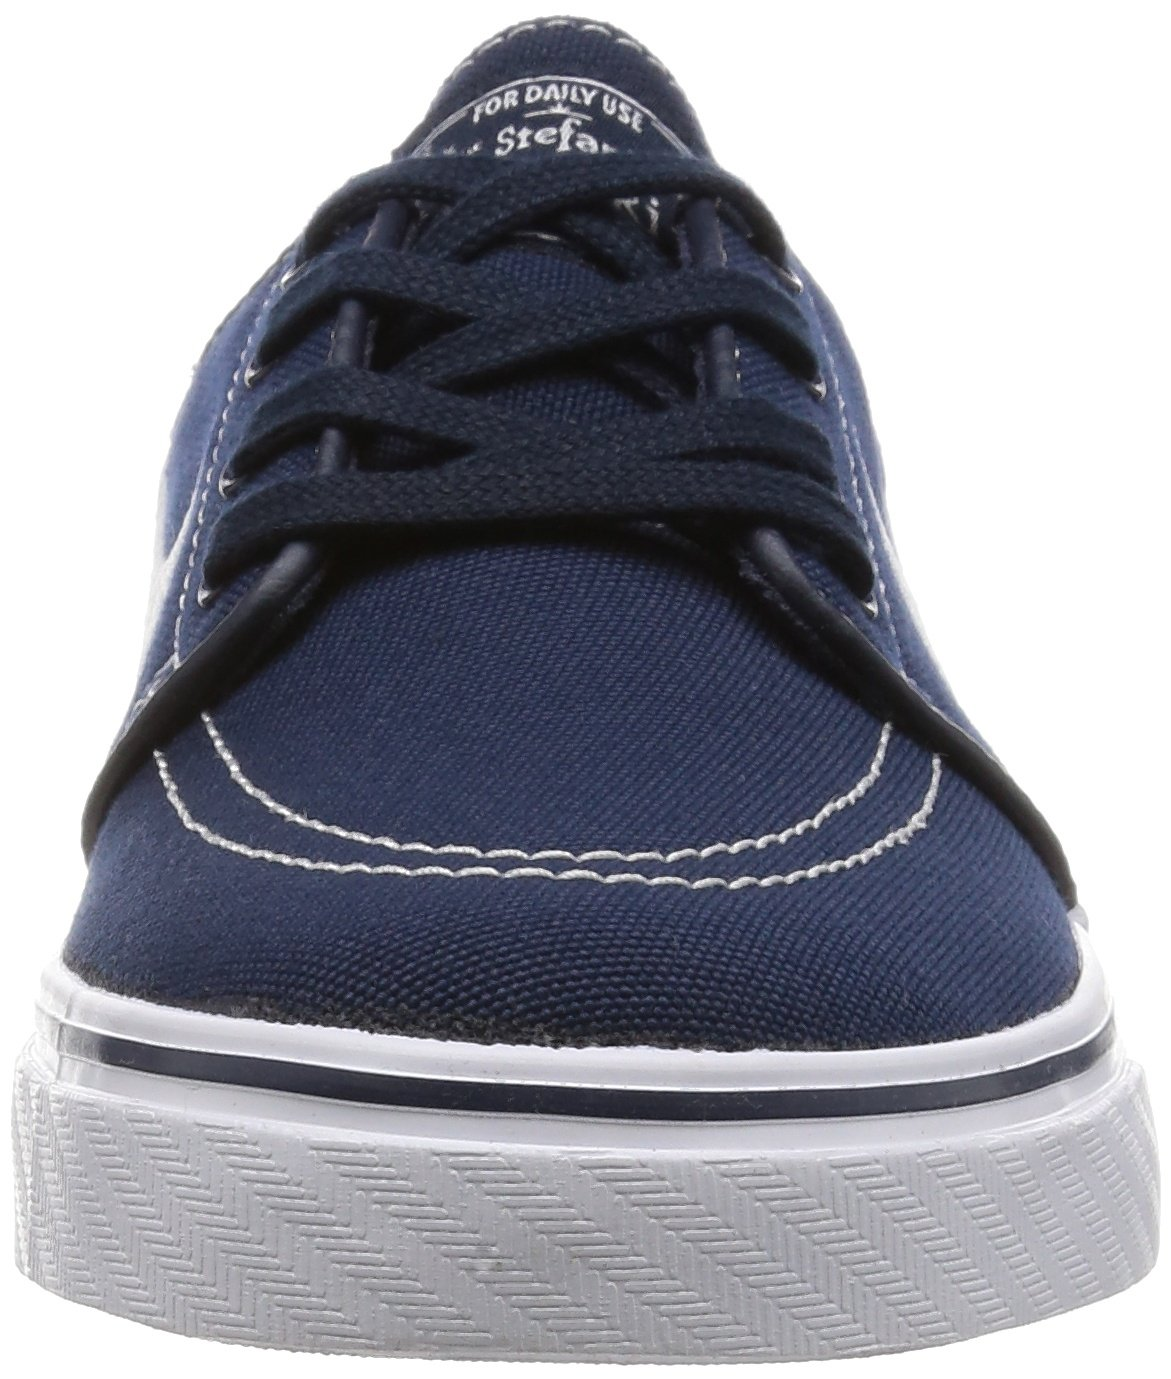 NIKE Men's D(M) Zoom Stefan Janoski Skate Shoe B01D0AGXQQ 8 D(M) Men's US|Obsidian/White-gum Light Brown c1abdc